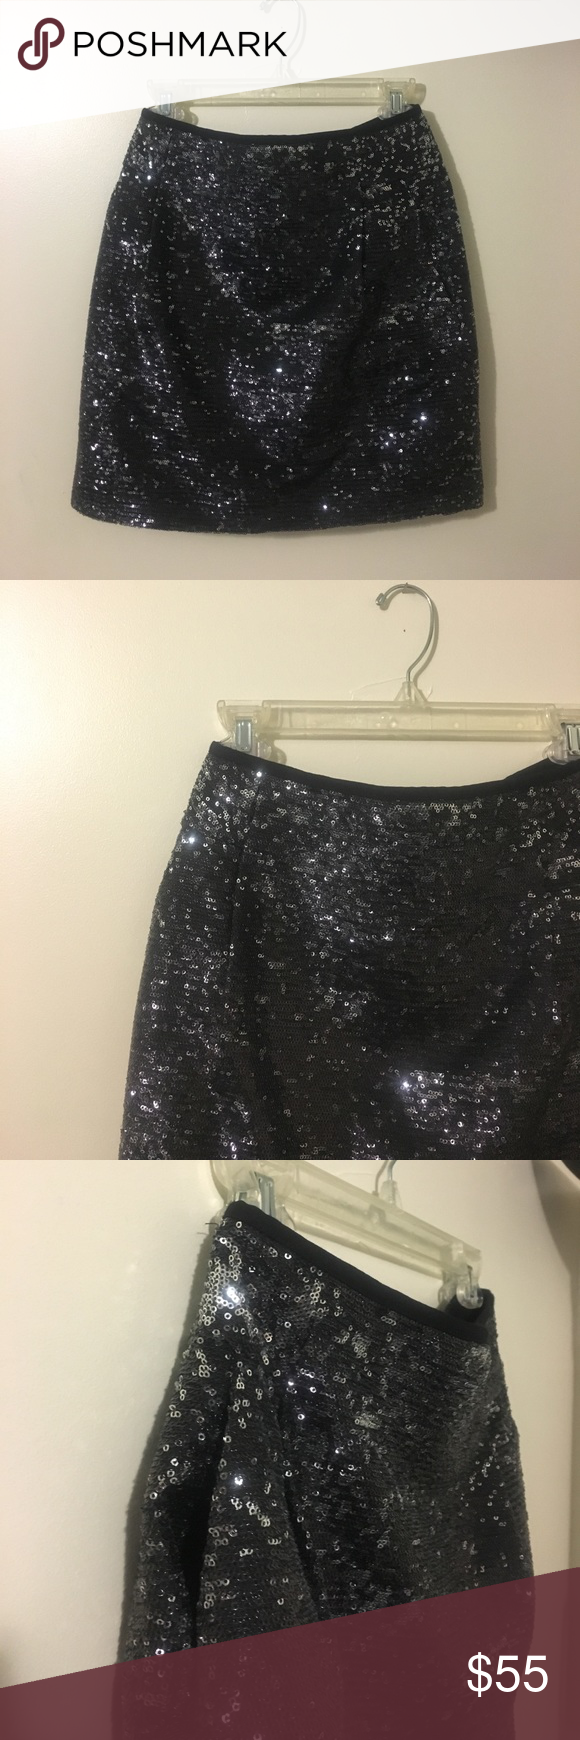 J. CREW Sequin Mini Skirt This mini skirt is black with shiny silver sequins. It also has functioning pockets on the side which are great for cell-phone and/or makeup when going out! J. Crew Skirts Mini